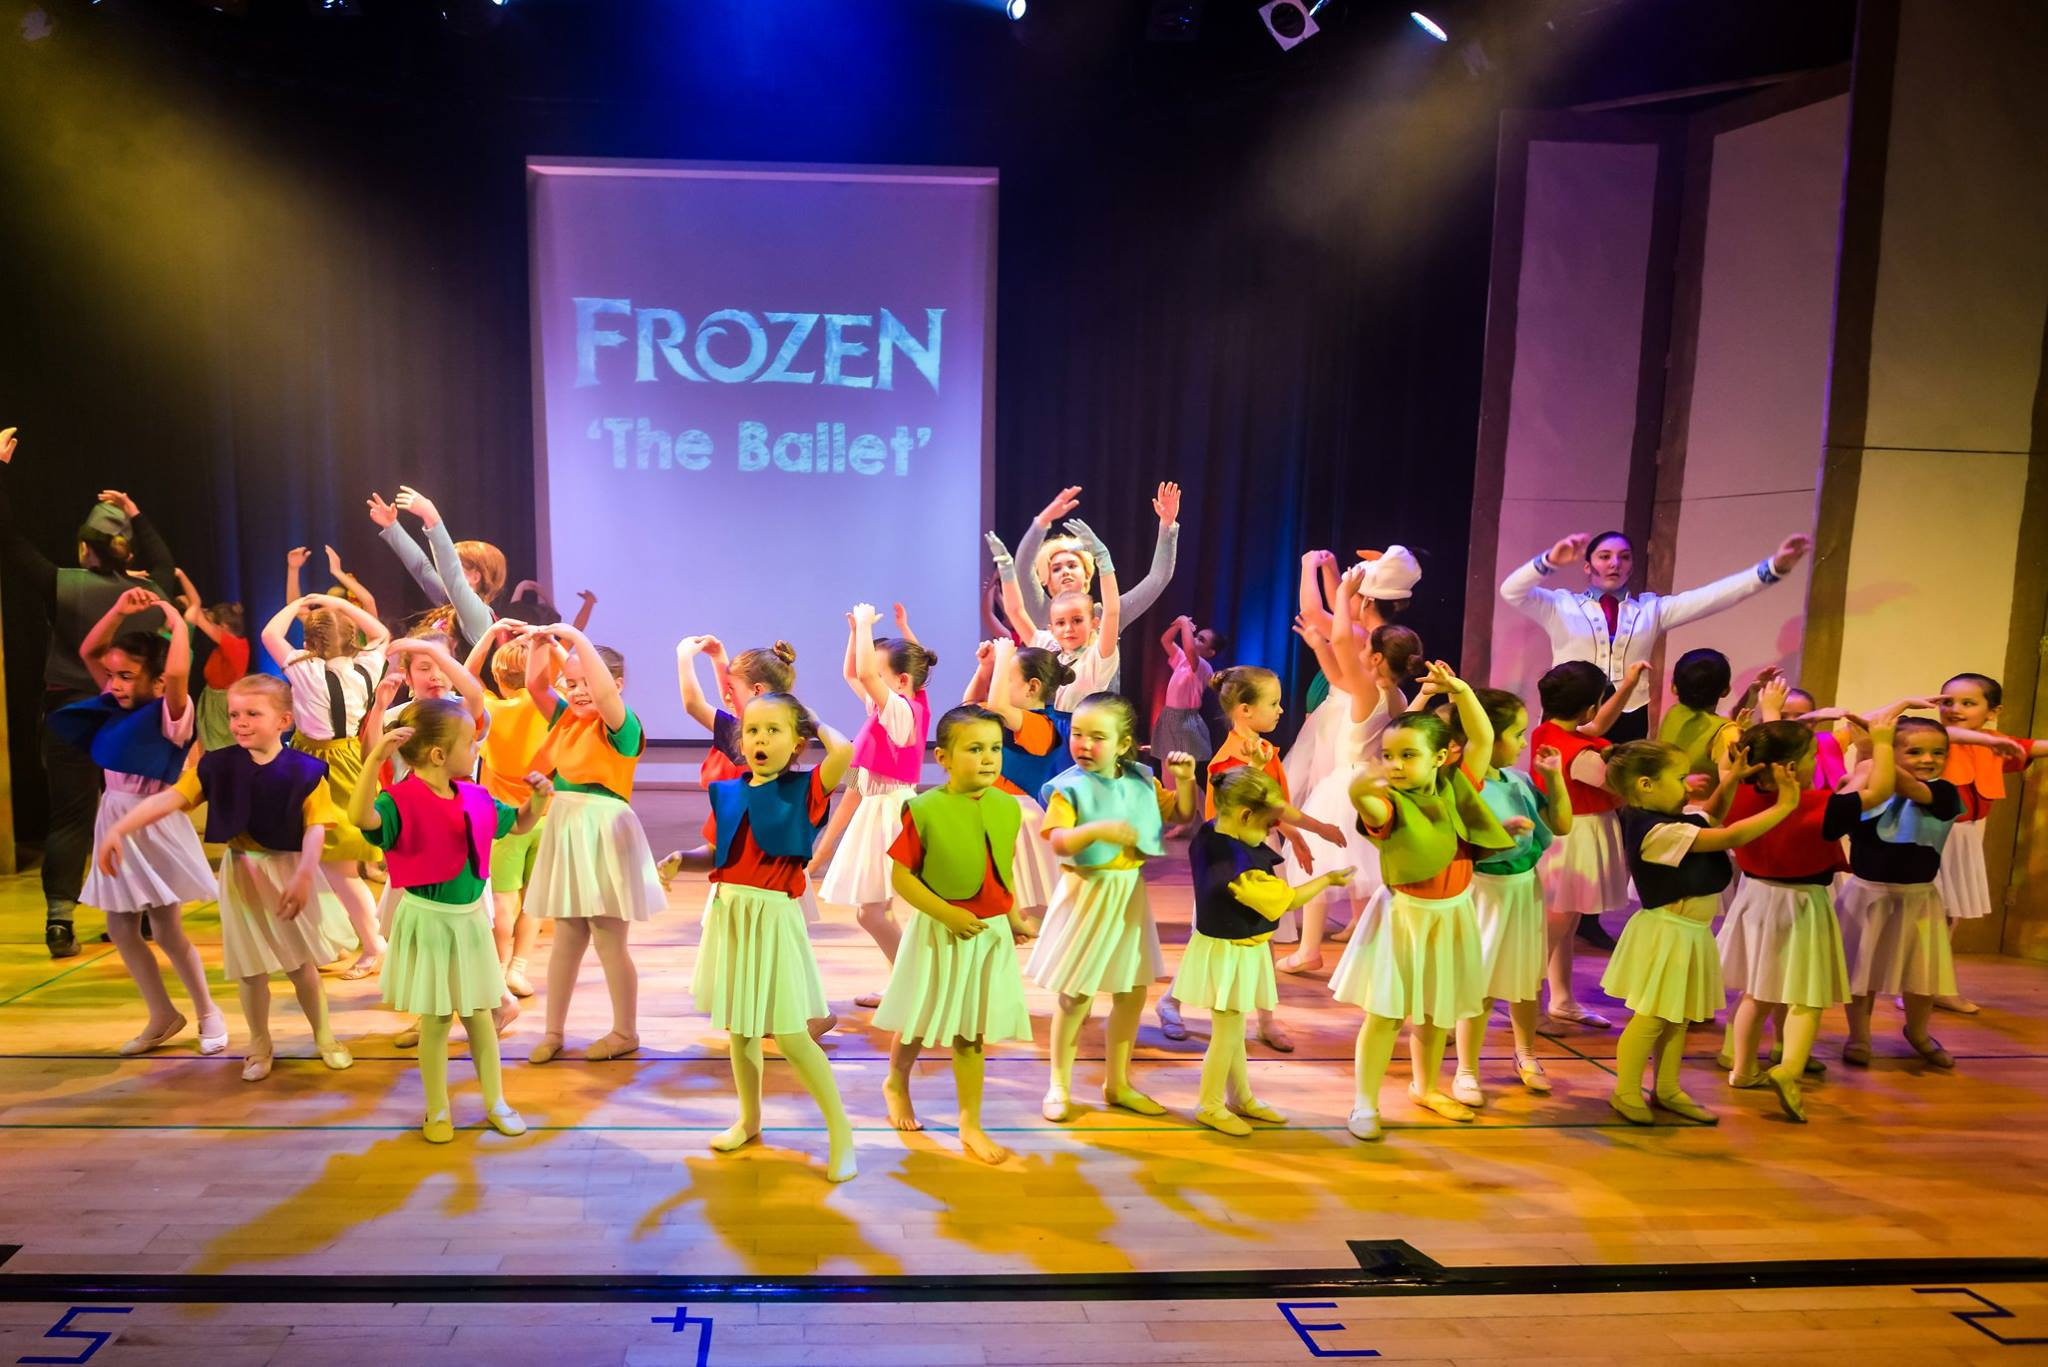 Frozen the Ballet